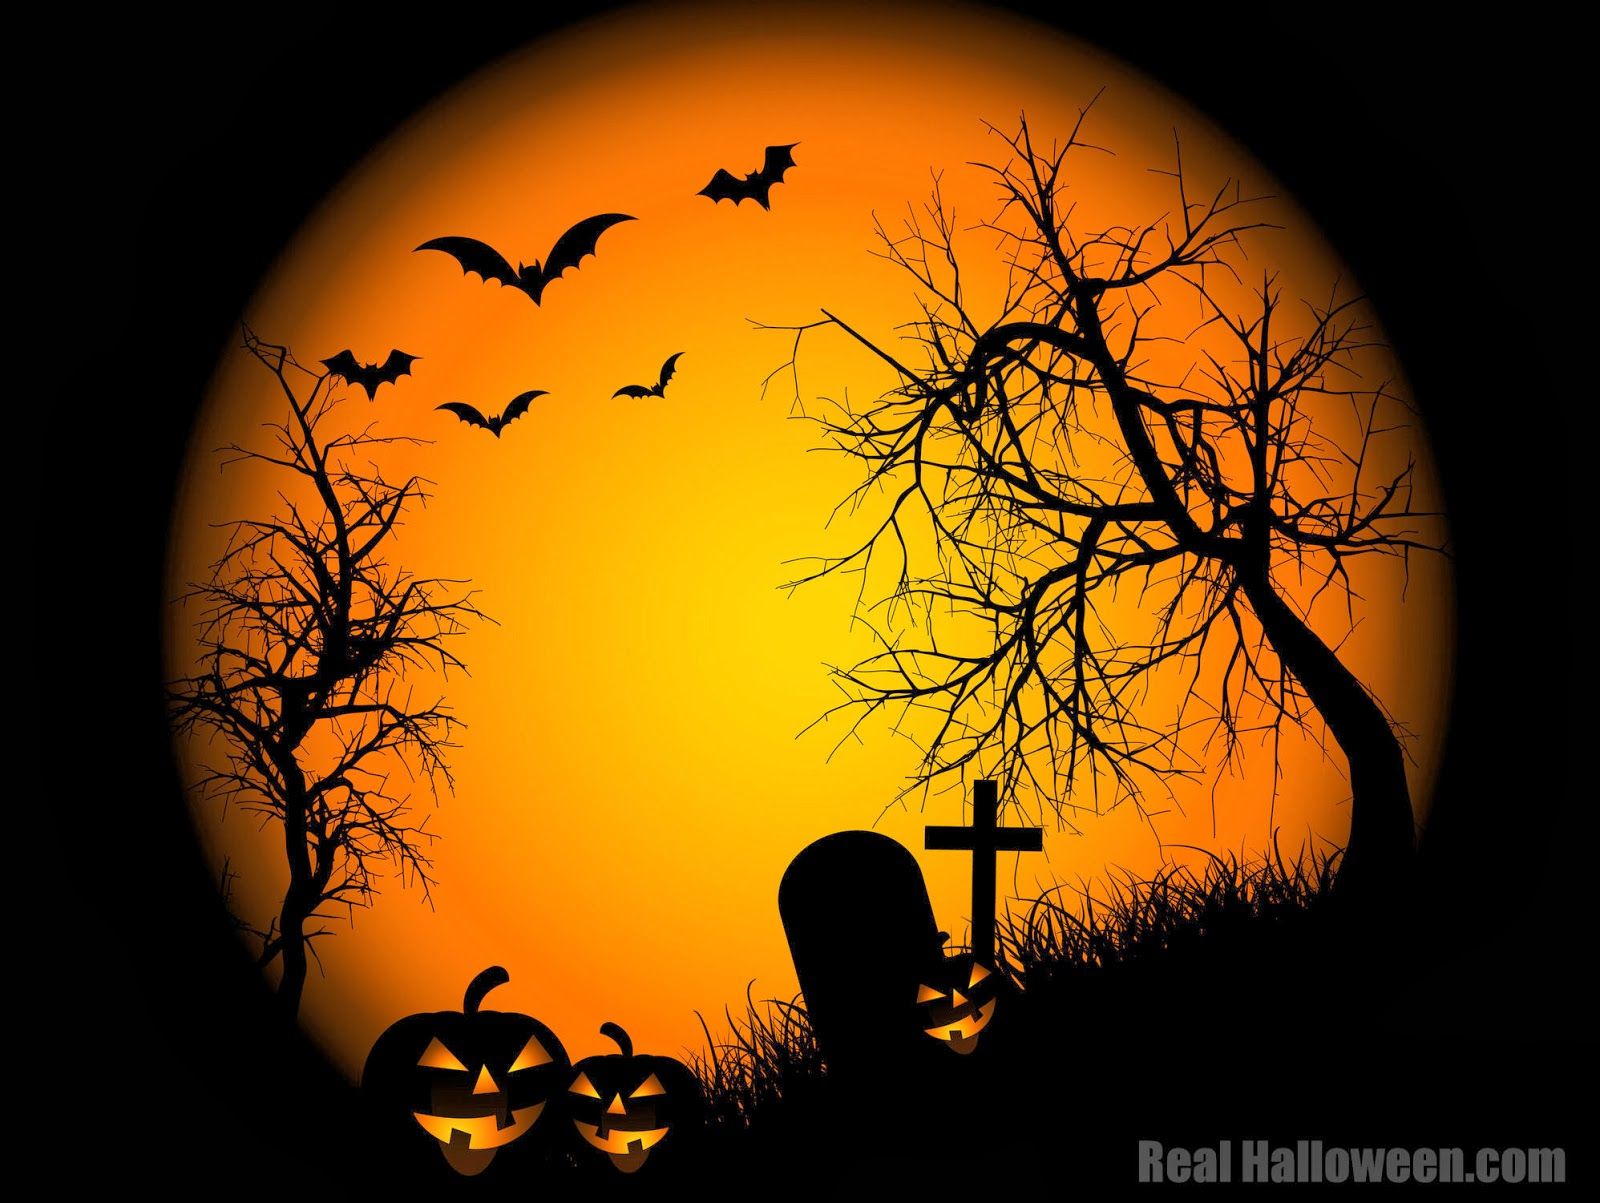 Hd Wallpapers Blog: Halloween Quotes